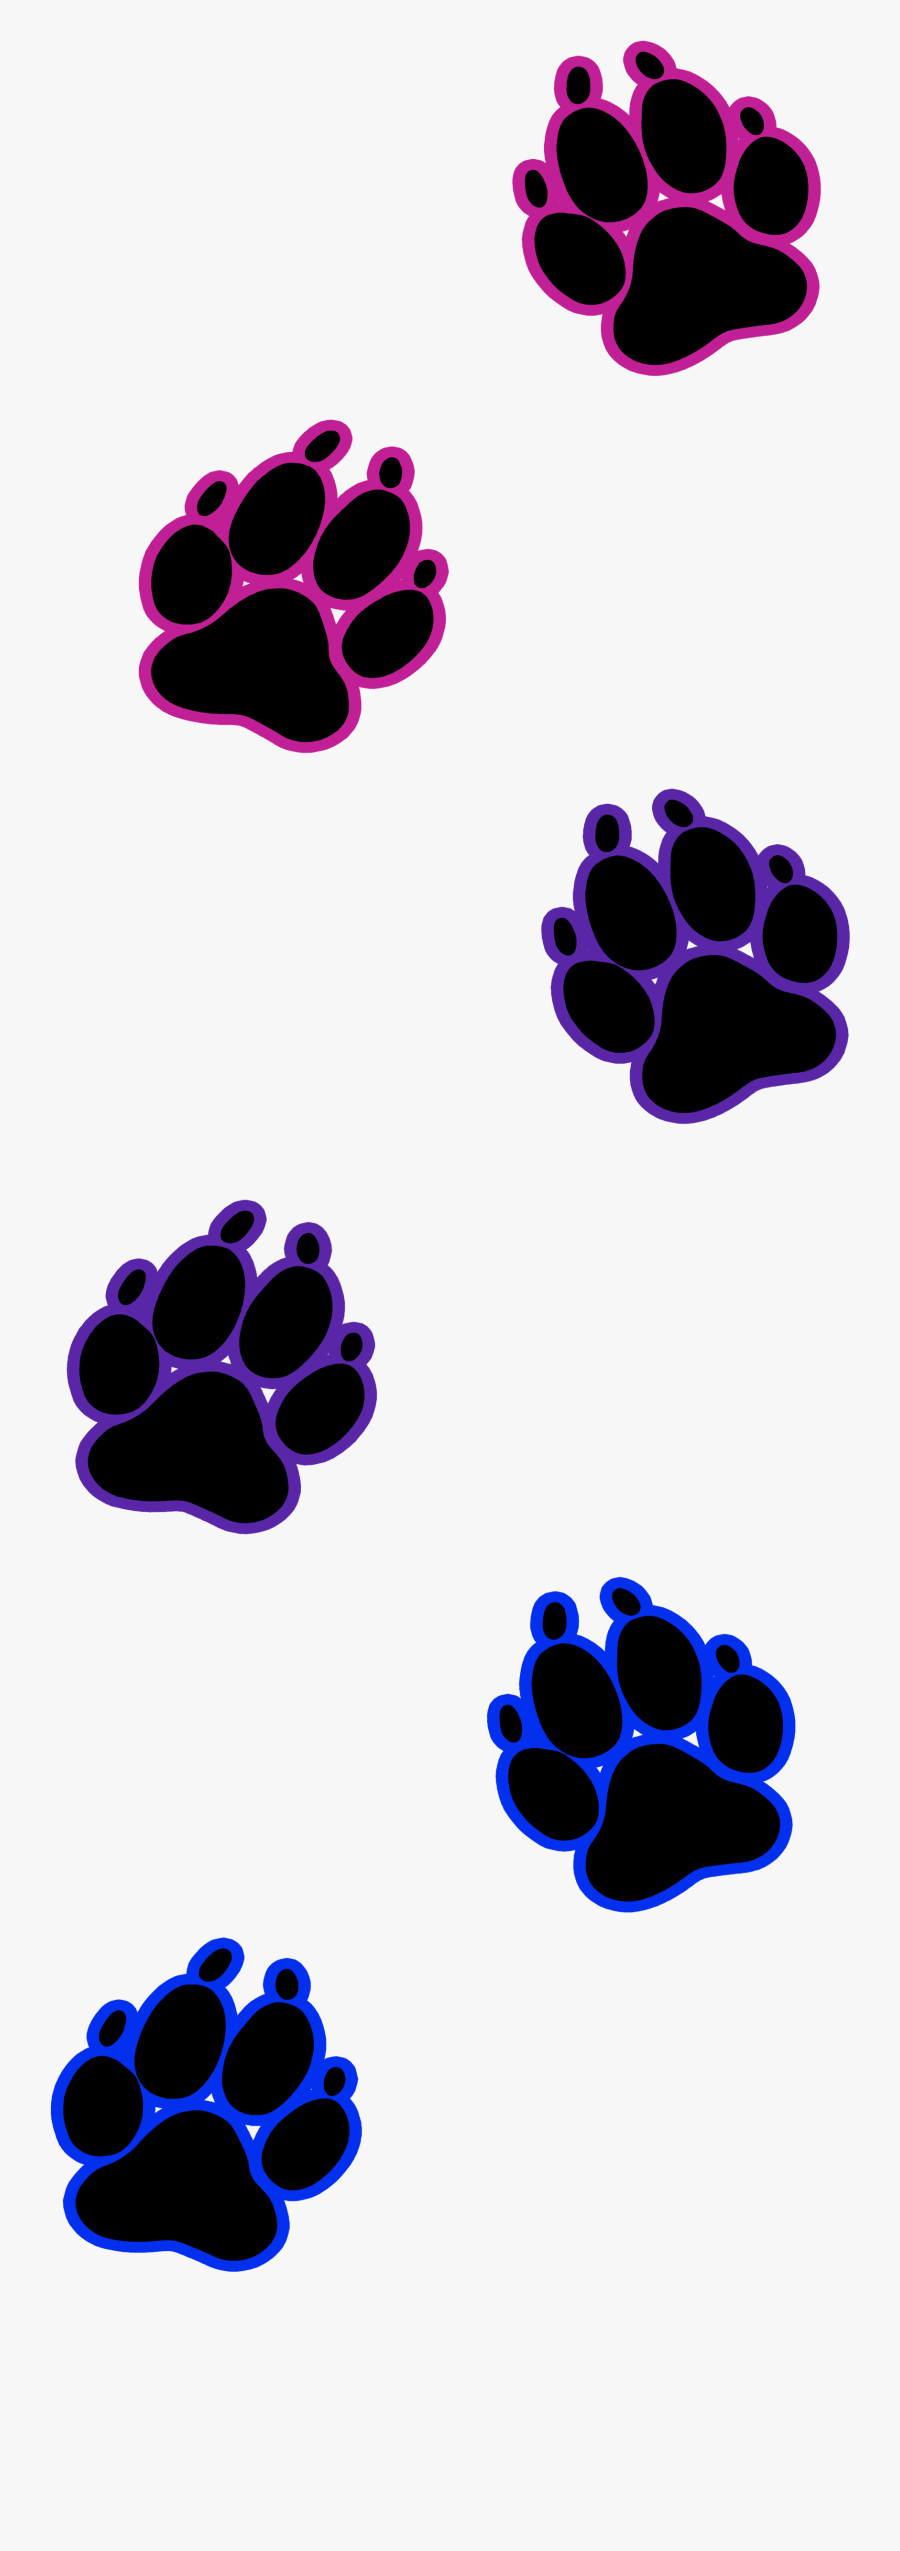 Transparent Dog Paw Print Background Free Transparent Clipart Clipartkey Find images of paw print. transparent dog paw print background